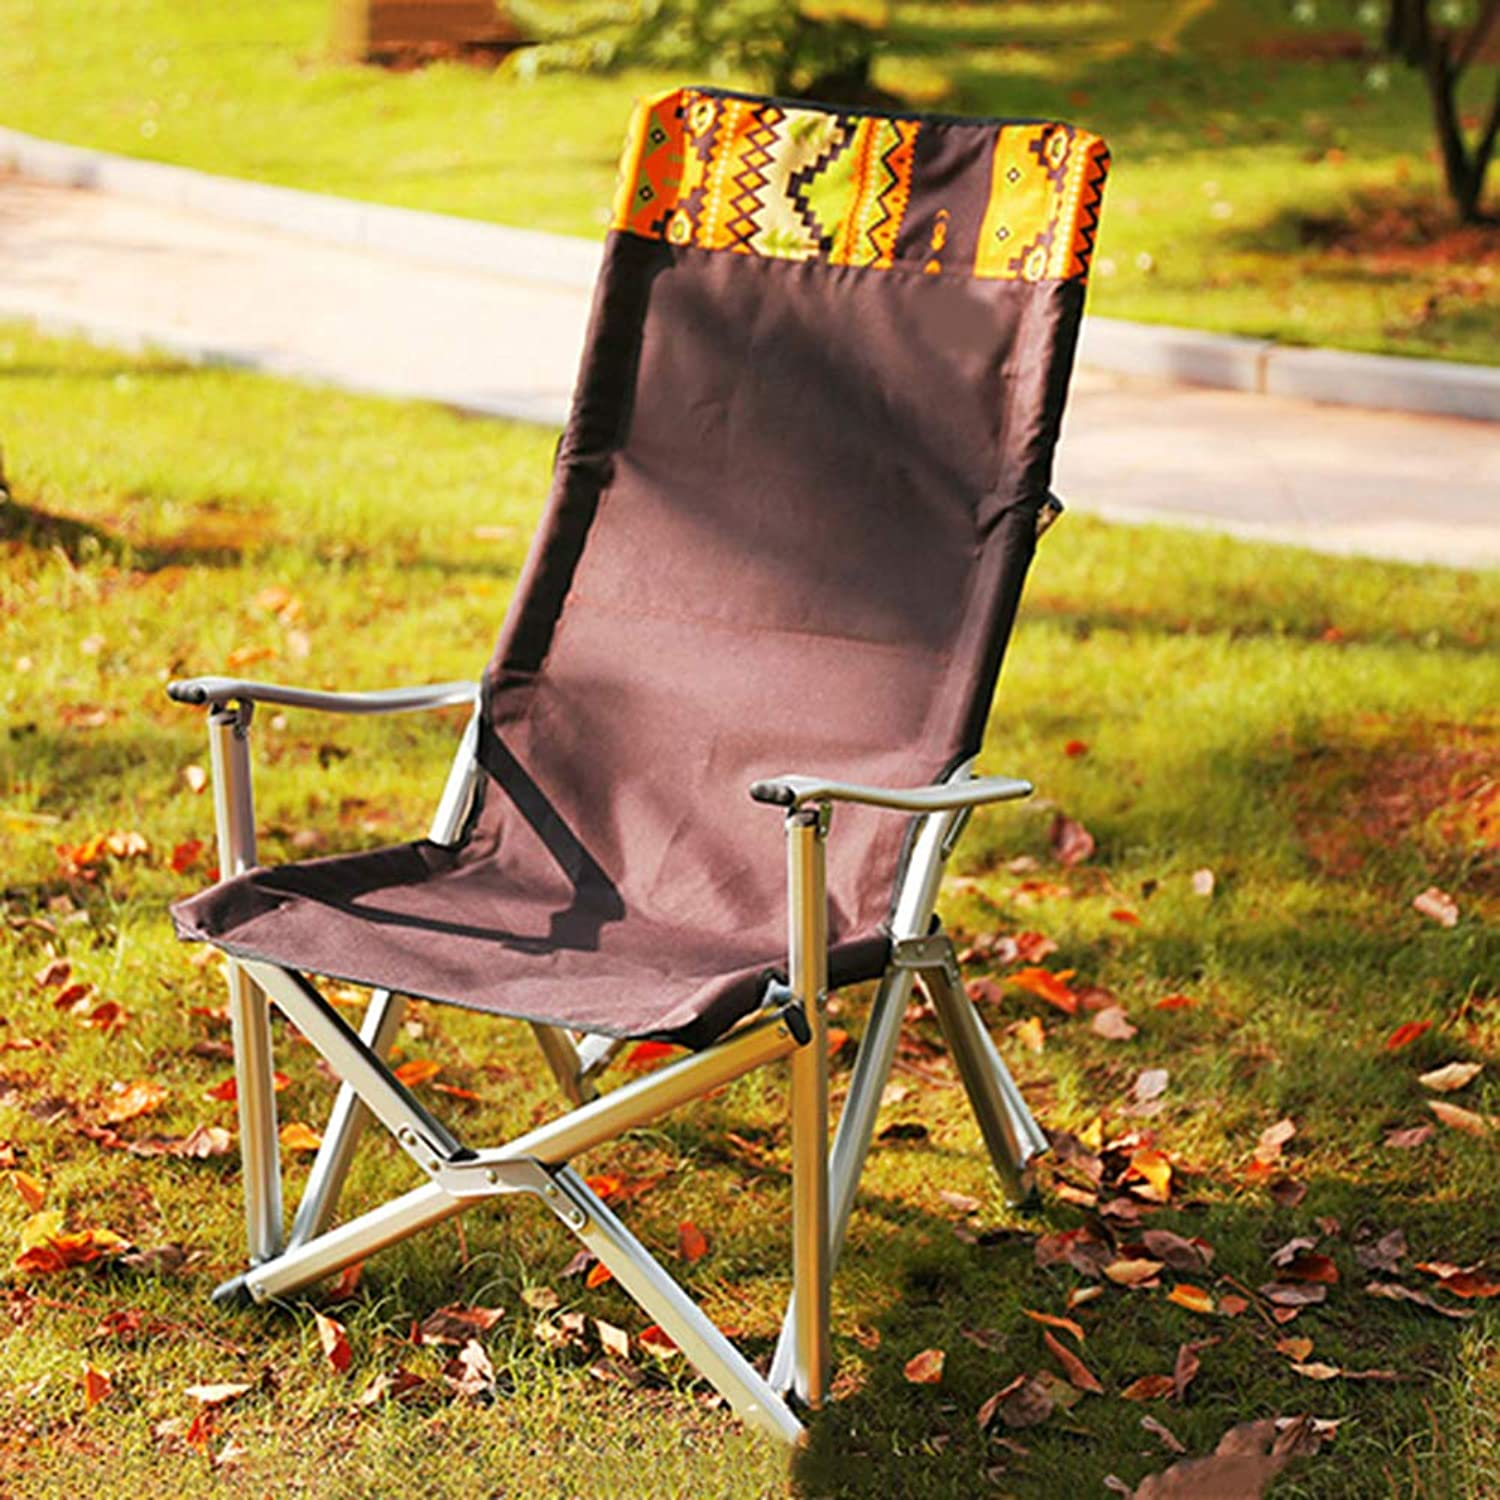 Hxx Camping & Wandern Angeln Stuhl Aluminium Material Multifunktionale Outdoor Chair Komfortable Liegestuhl Bequeme Lounge Chair Last 120kg,A